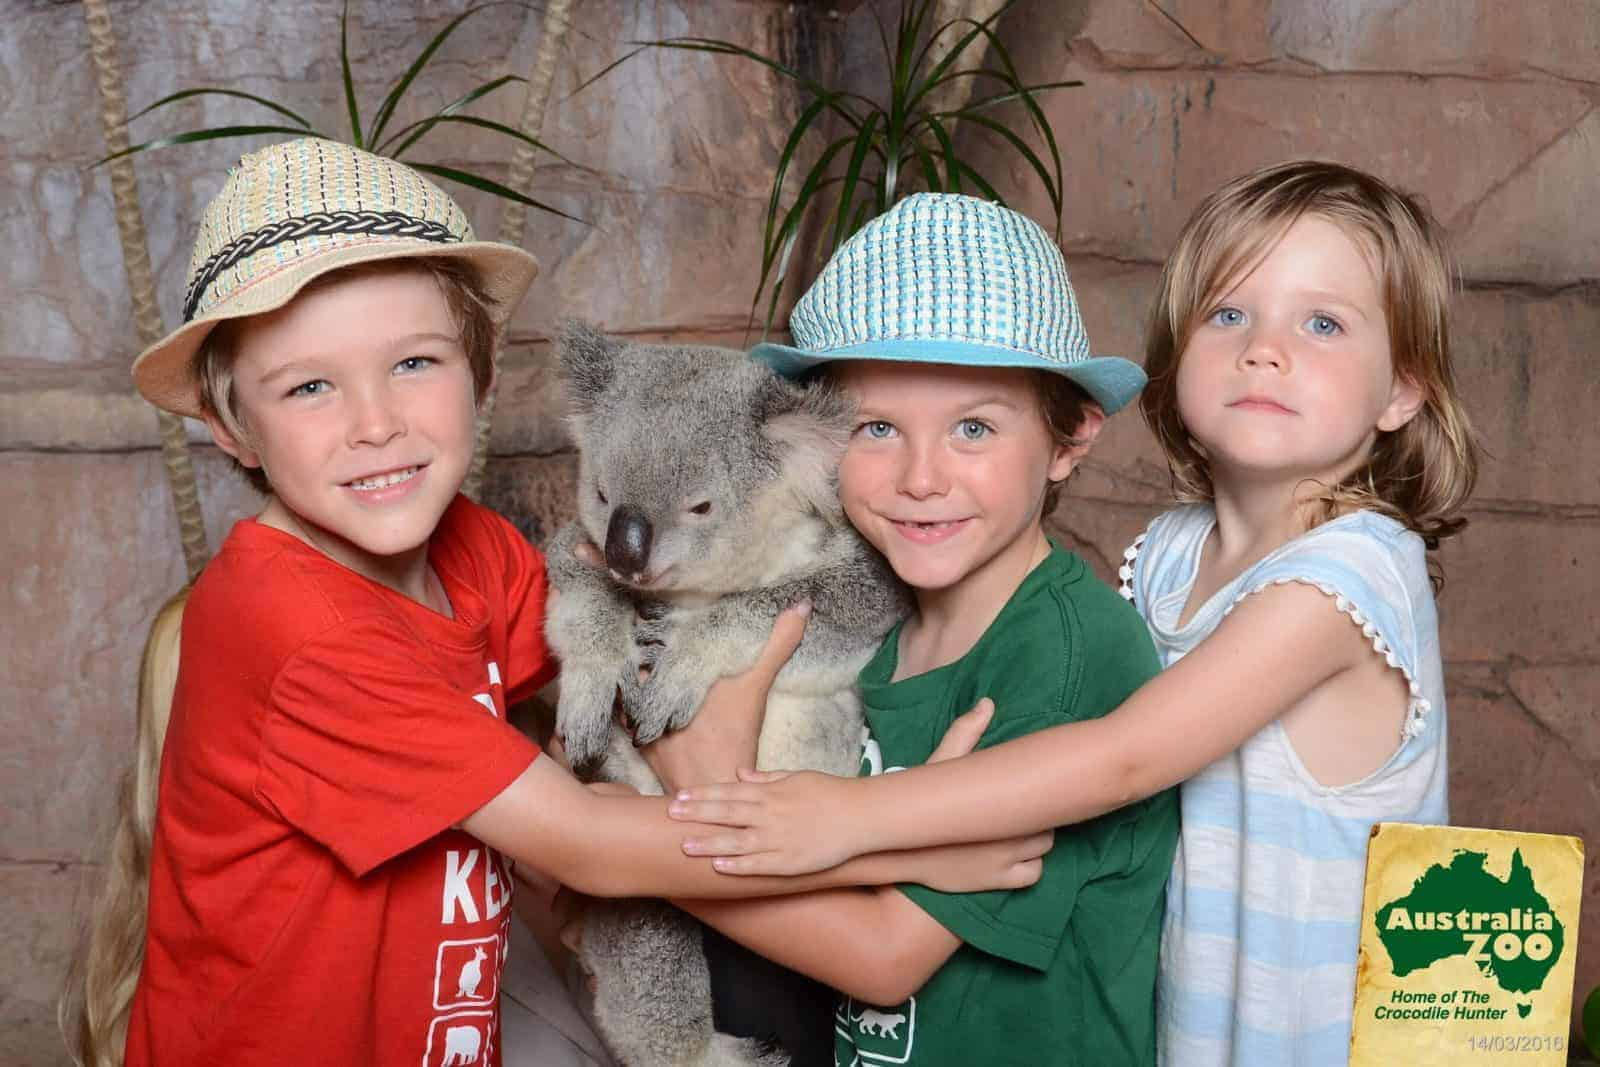 Three kids at Australia Zoo making memories